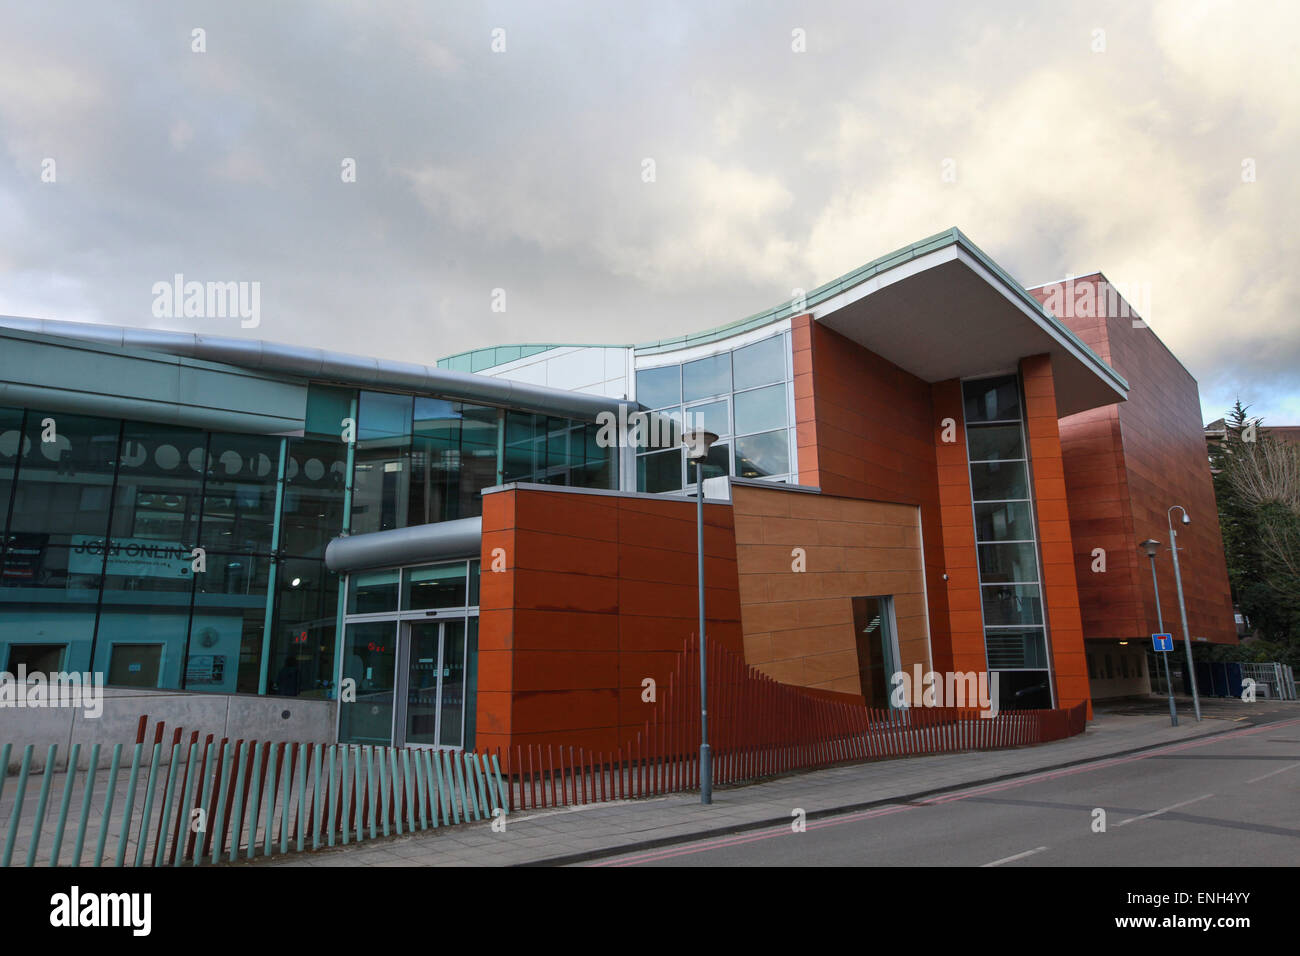 Freeman's Quay leisure centre Durham - Stock Image